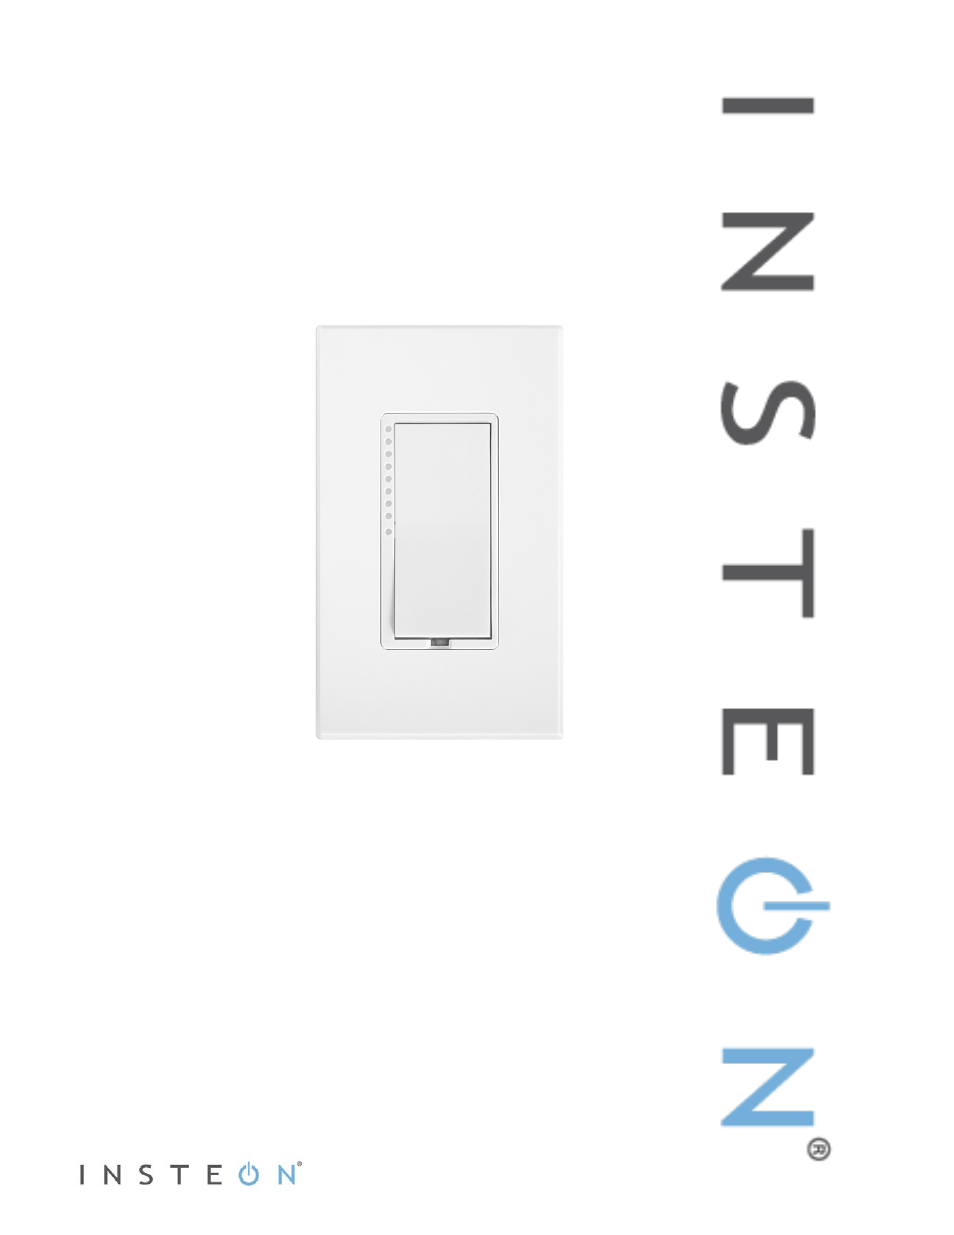 Insteon Switchlinc Dimmer Dual Band 2477d Manual Version 70 4 Way Wiring Diagram And Newer User 16 Pages